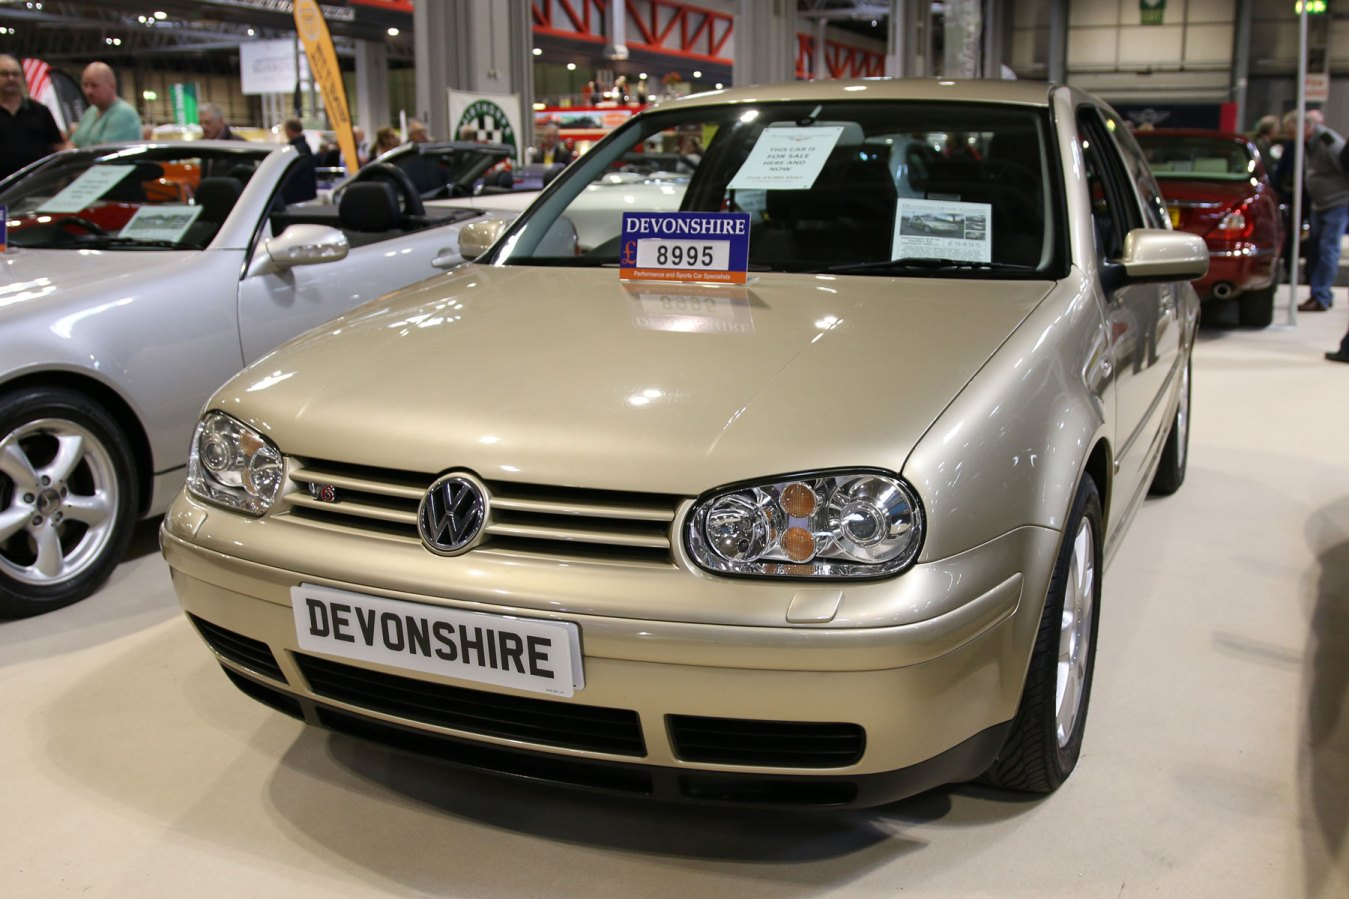 Volkswagen Golf: £8,995 - £9,495